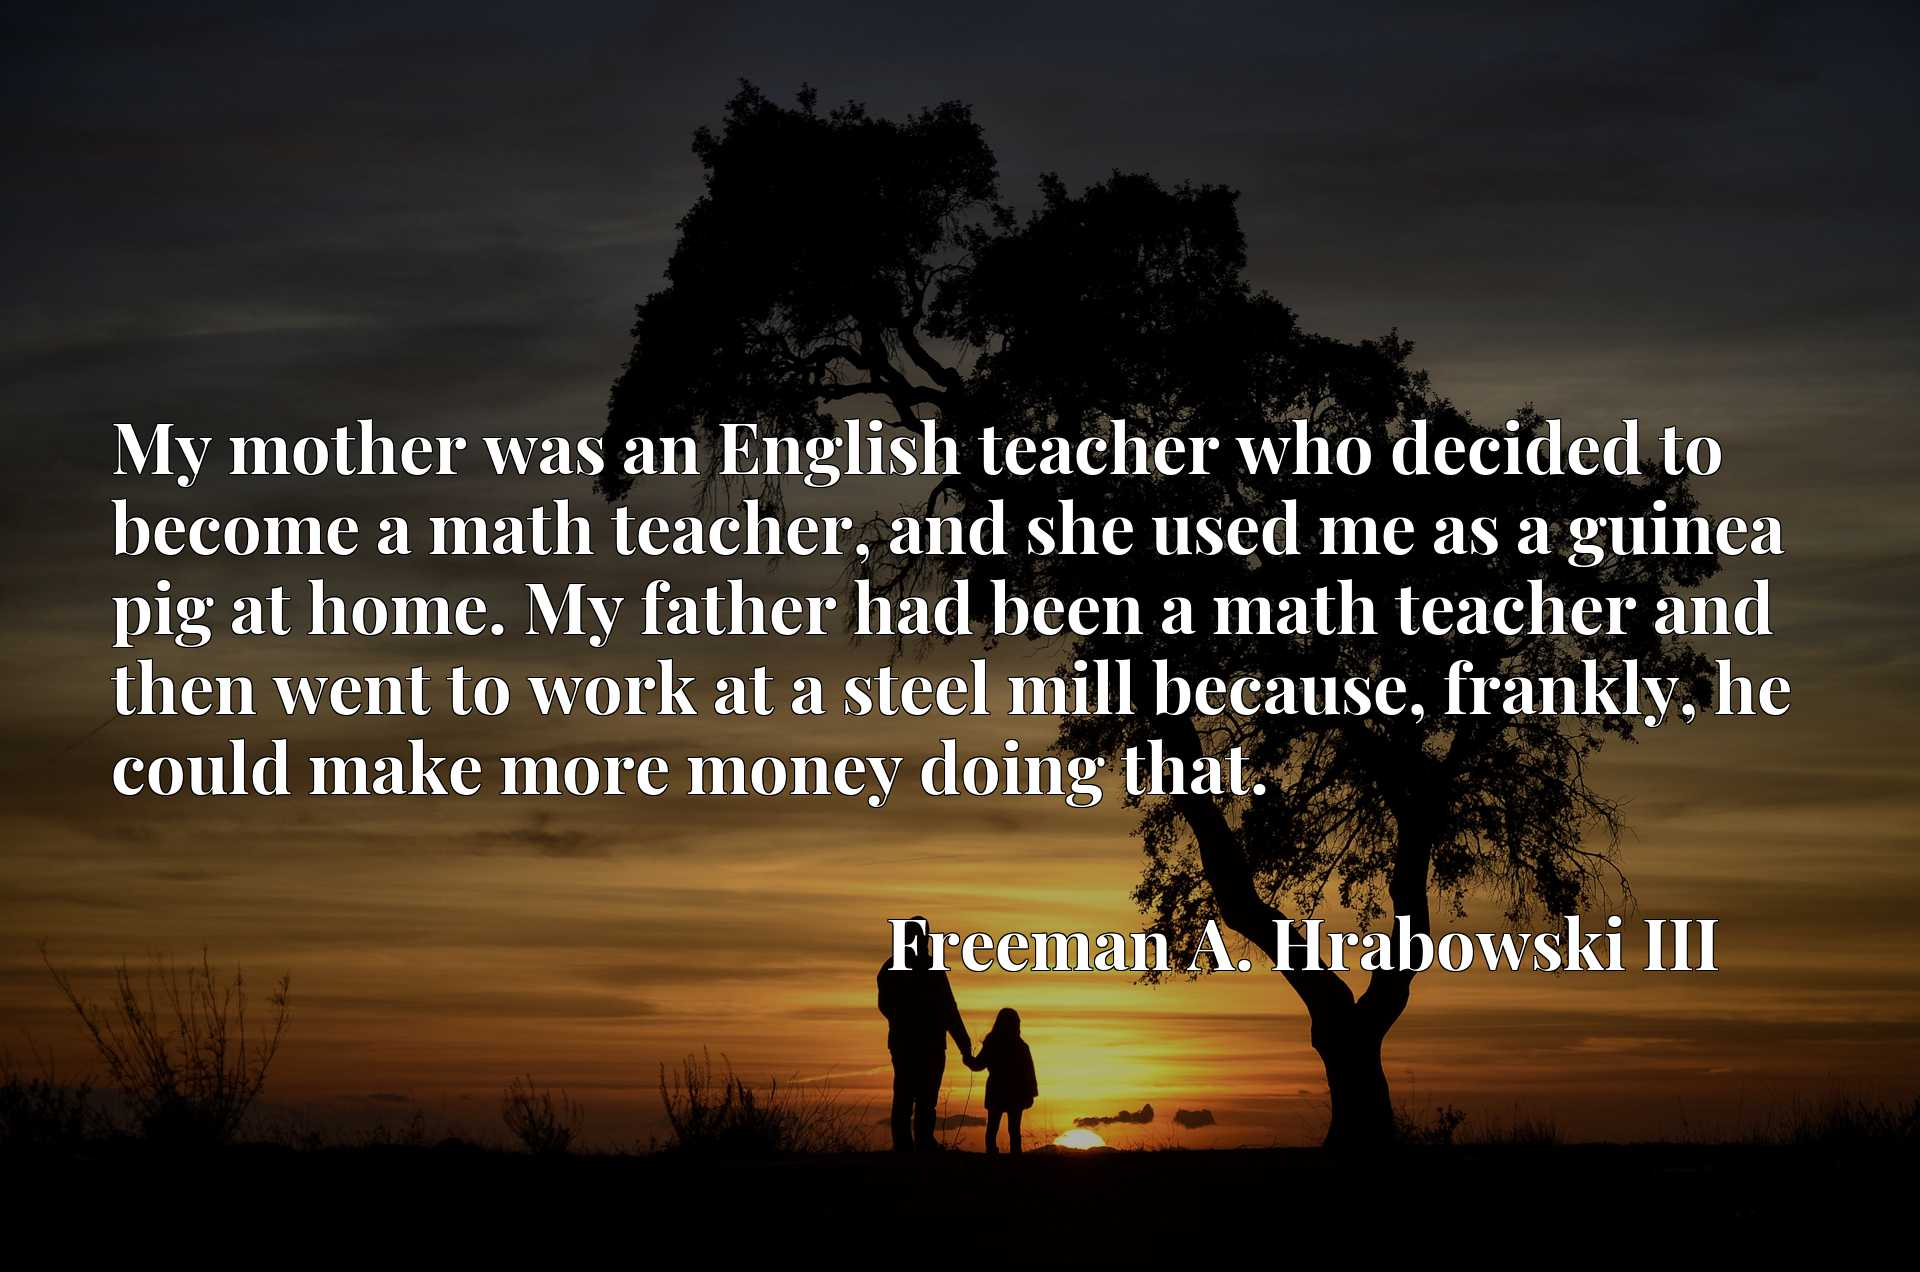 My mother was an English teacher who decided to become a math teacher, and she used me as a guinea pig at home. My father had been a math teacher and then went to work at a steel mill because, frankly, he could make more money doing that.